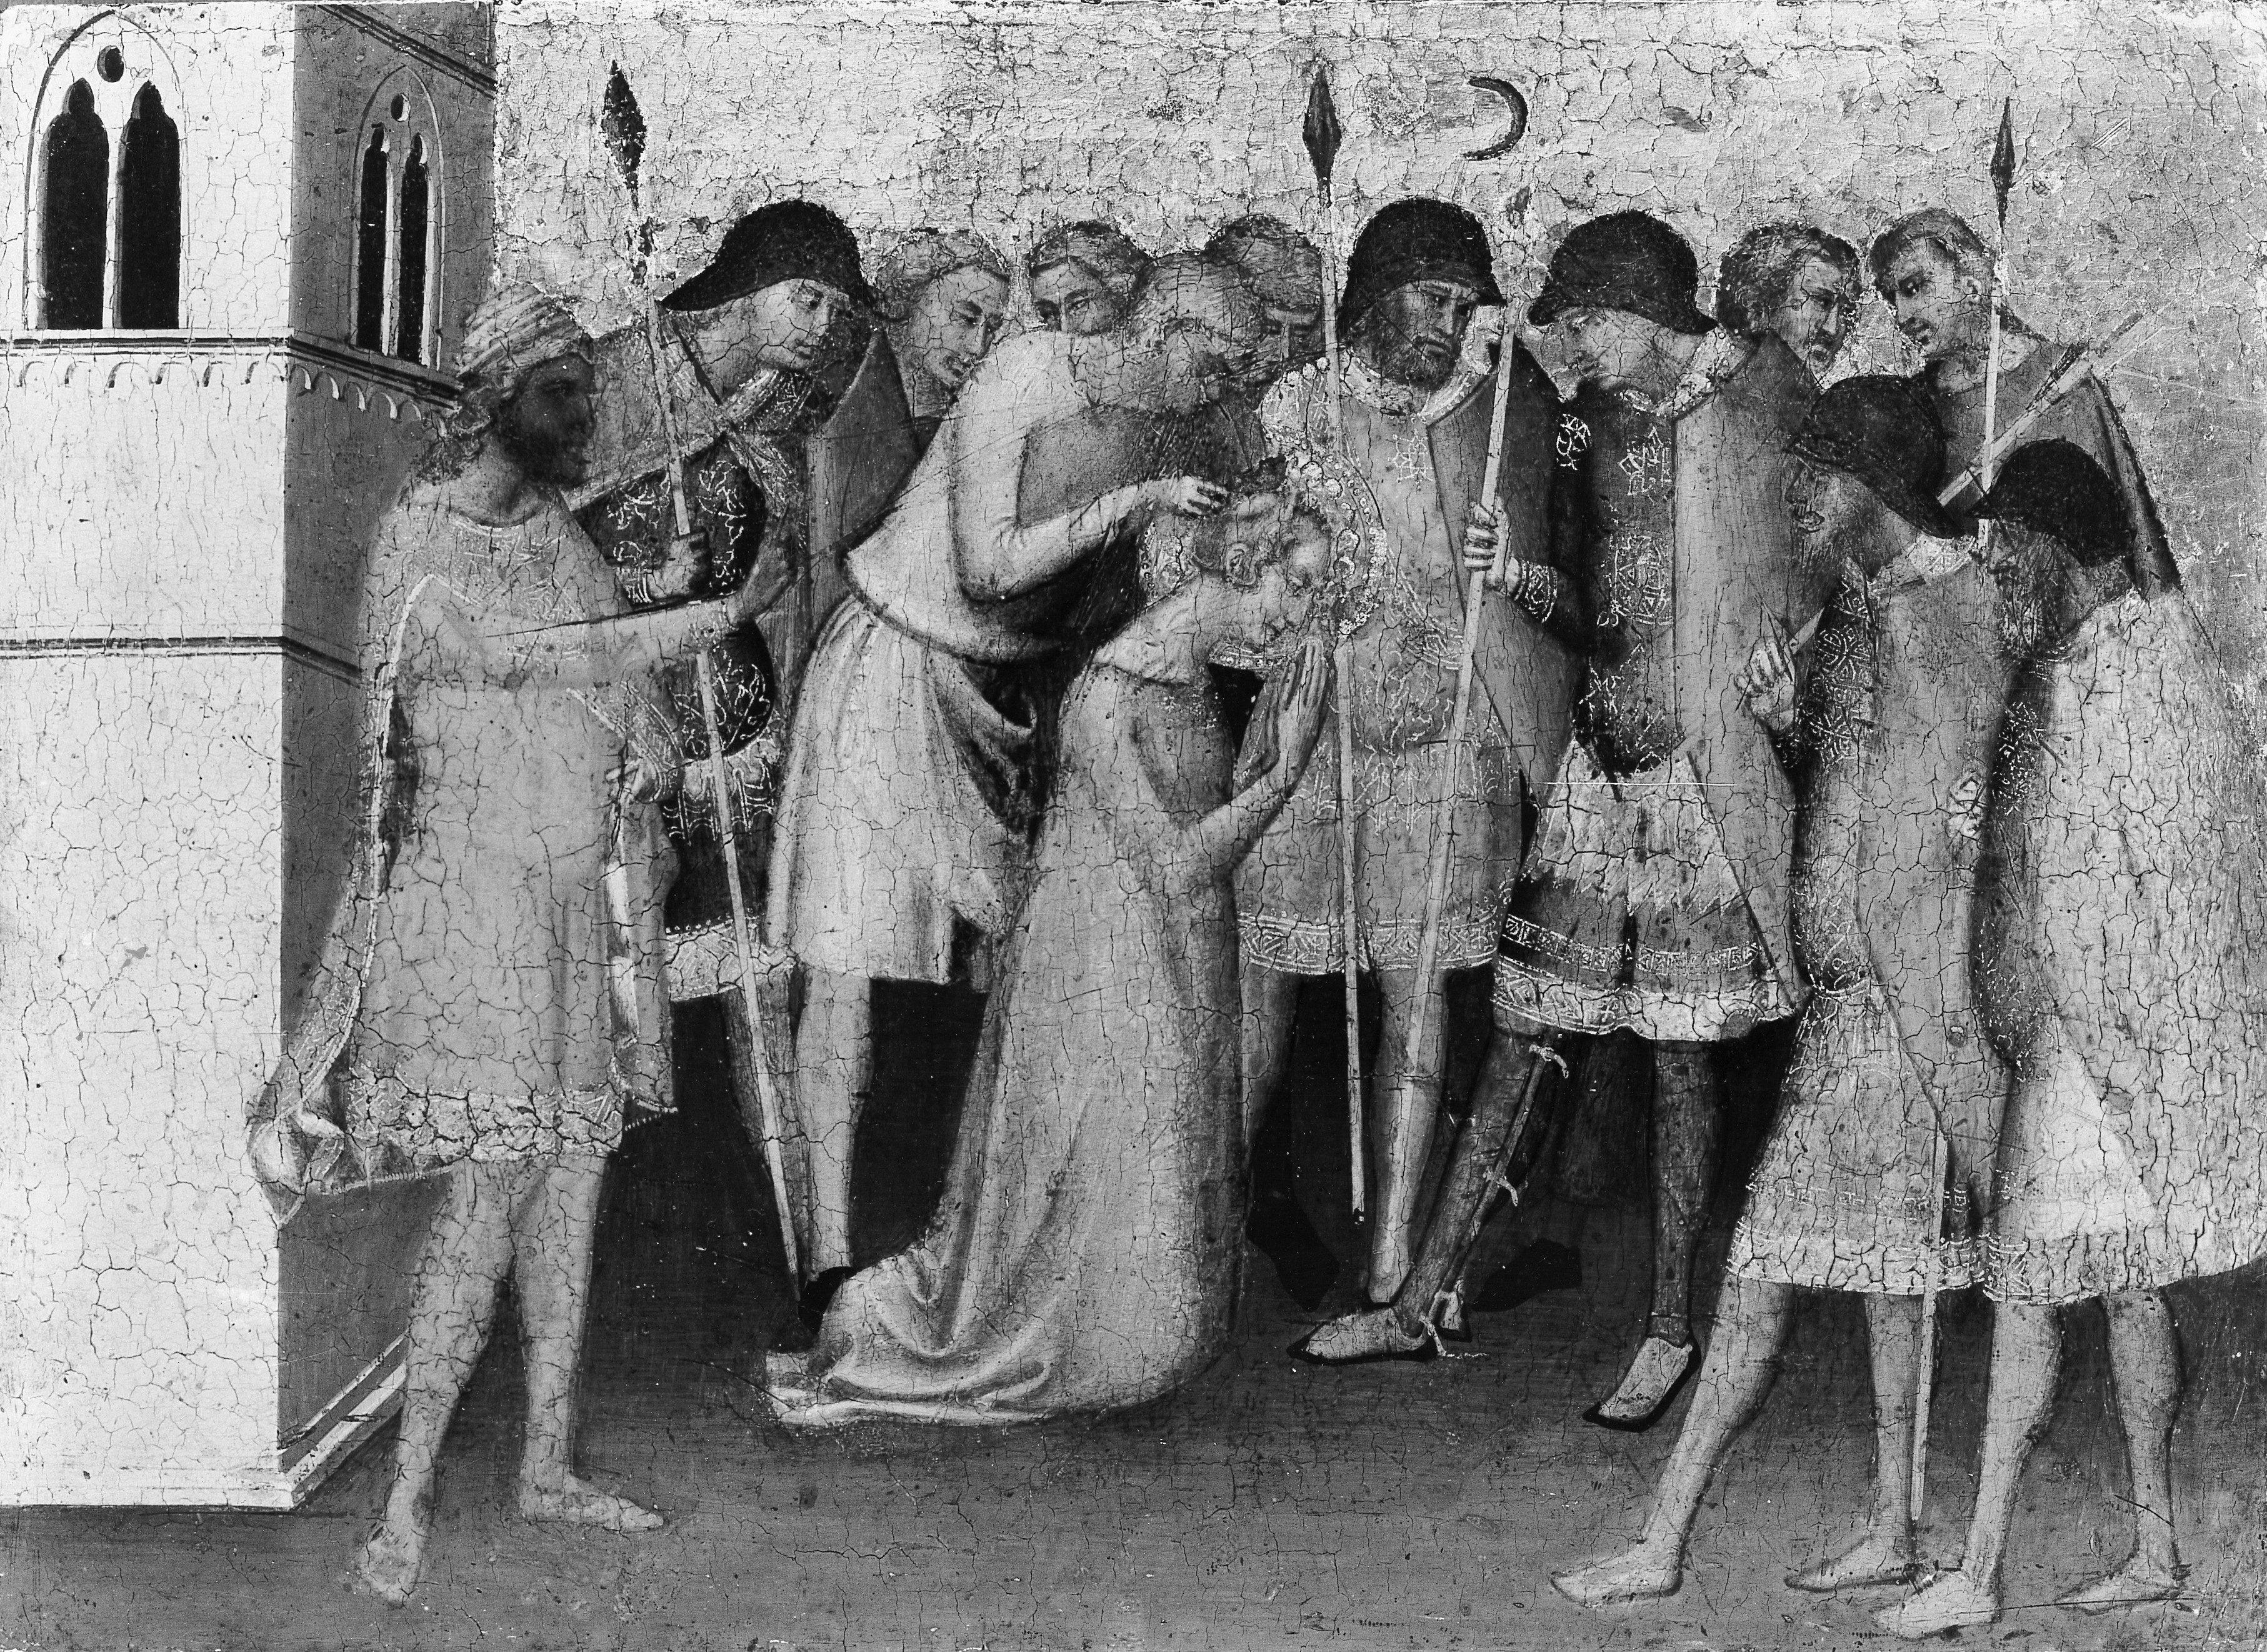 Saint_Reparata_Being_Prepared_for_Execution_MET_ep43.98.4.bw.R